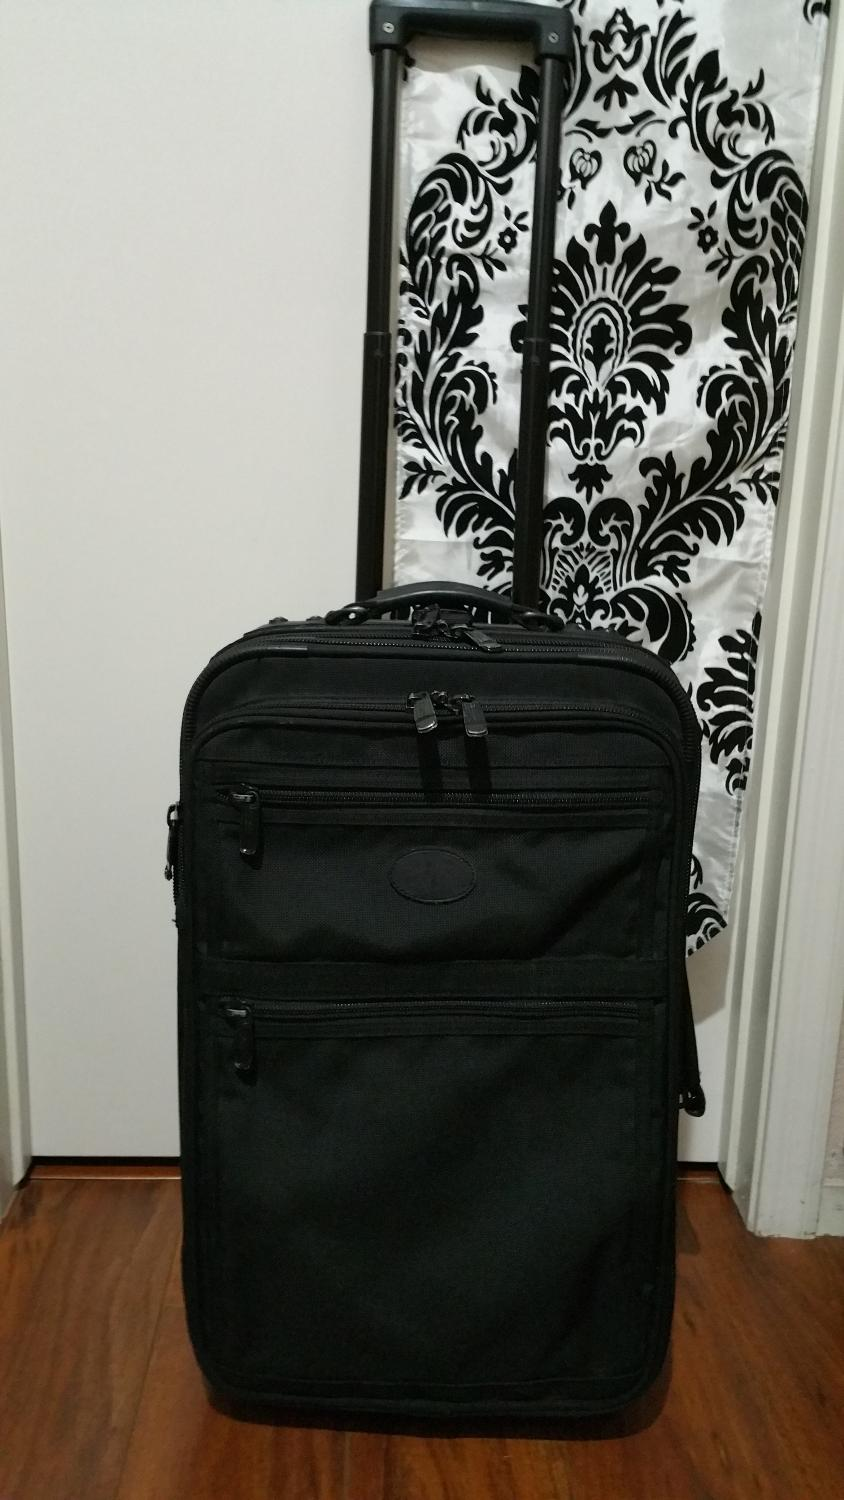 Best Kirkland Signature Costco Duramax Ballistic Nylon 22 Upright Expandable Wheeled Suitcase Approx 23 X 14 X 9 Exp Nw Area 89131 For Sale In Las Vegas Nevada For 2021 Tag your photos with #costco for a chance to be featured. kirkland signature costco duramax ballistic nylon 22 upright expandable wheeled suitcase approx 23 x 14 x 9 exp nw area 89131